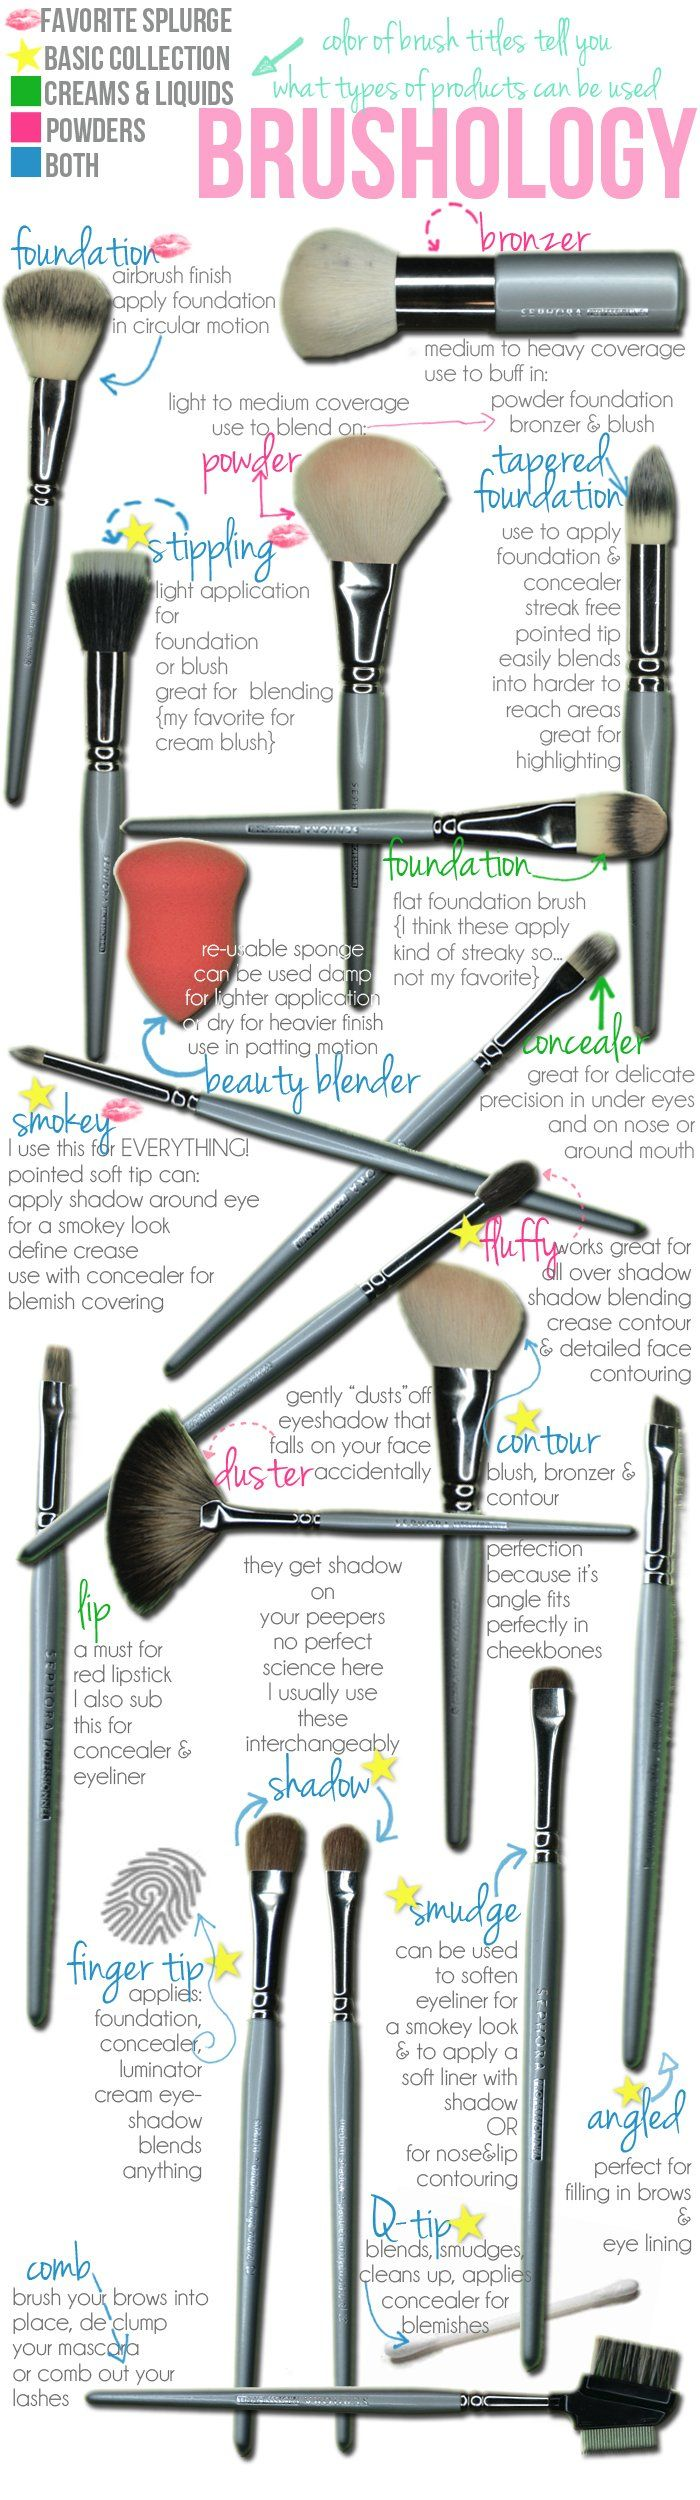 brushology: everything you ever need to know about makeup brushes!